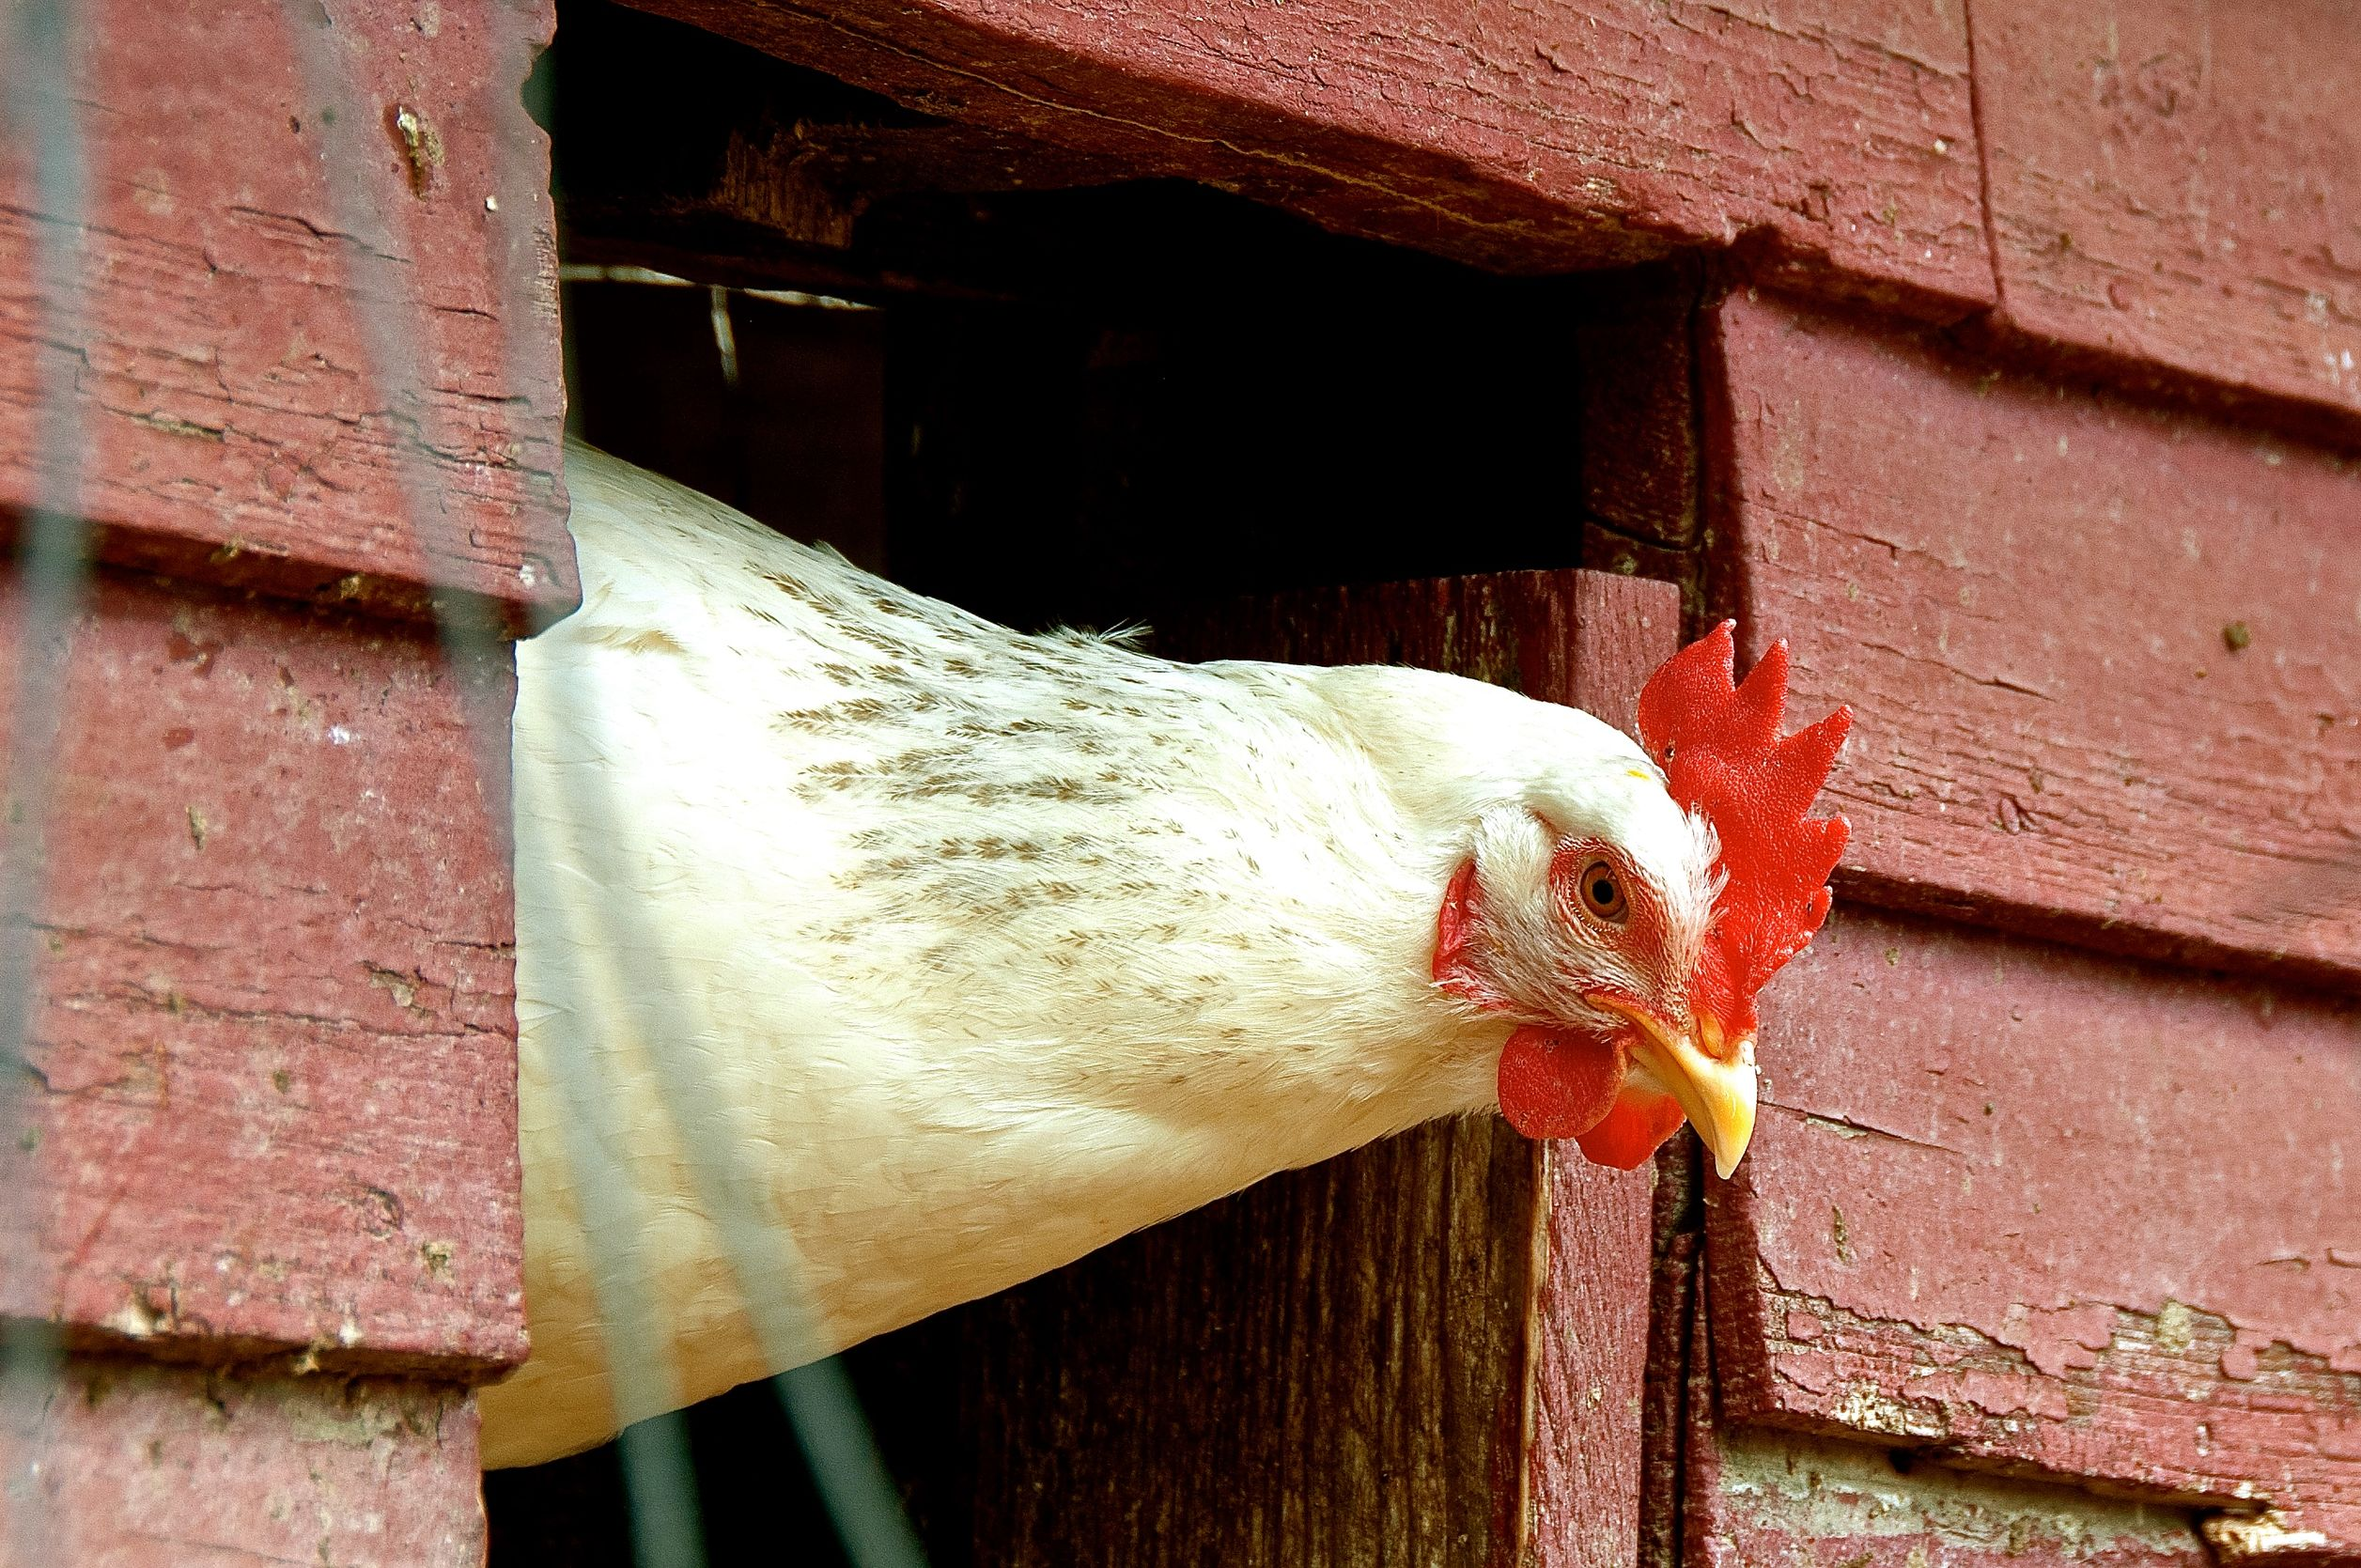 A hen looks out from the henhouse.